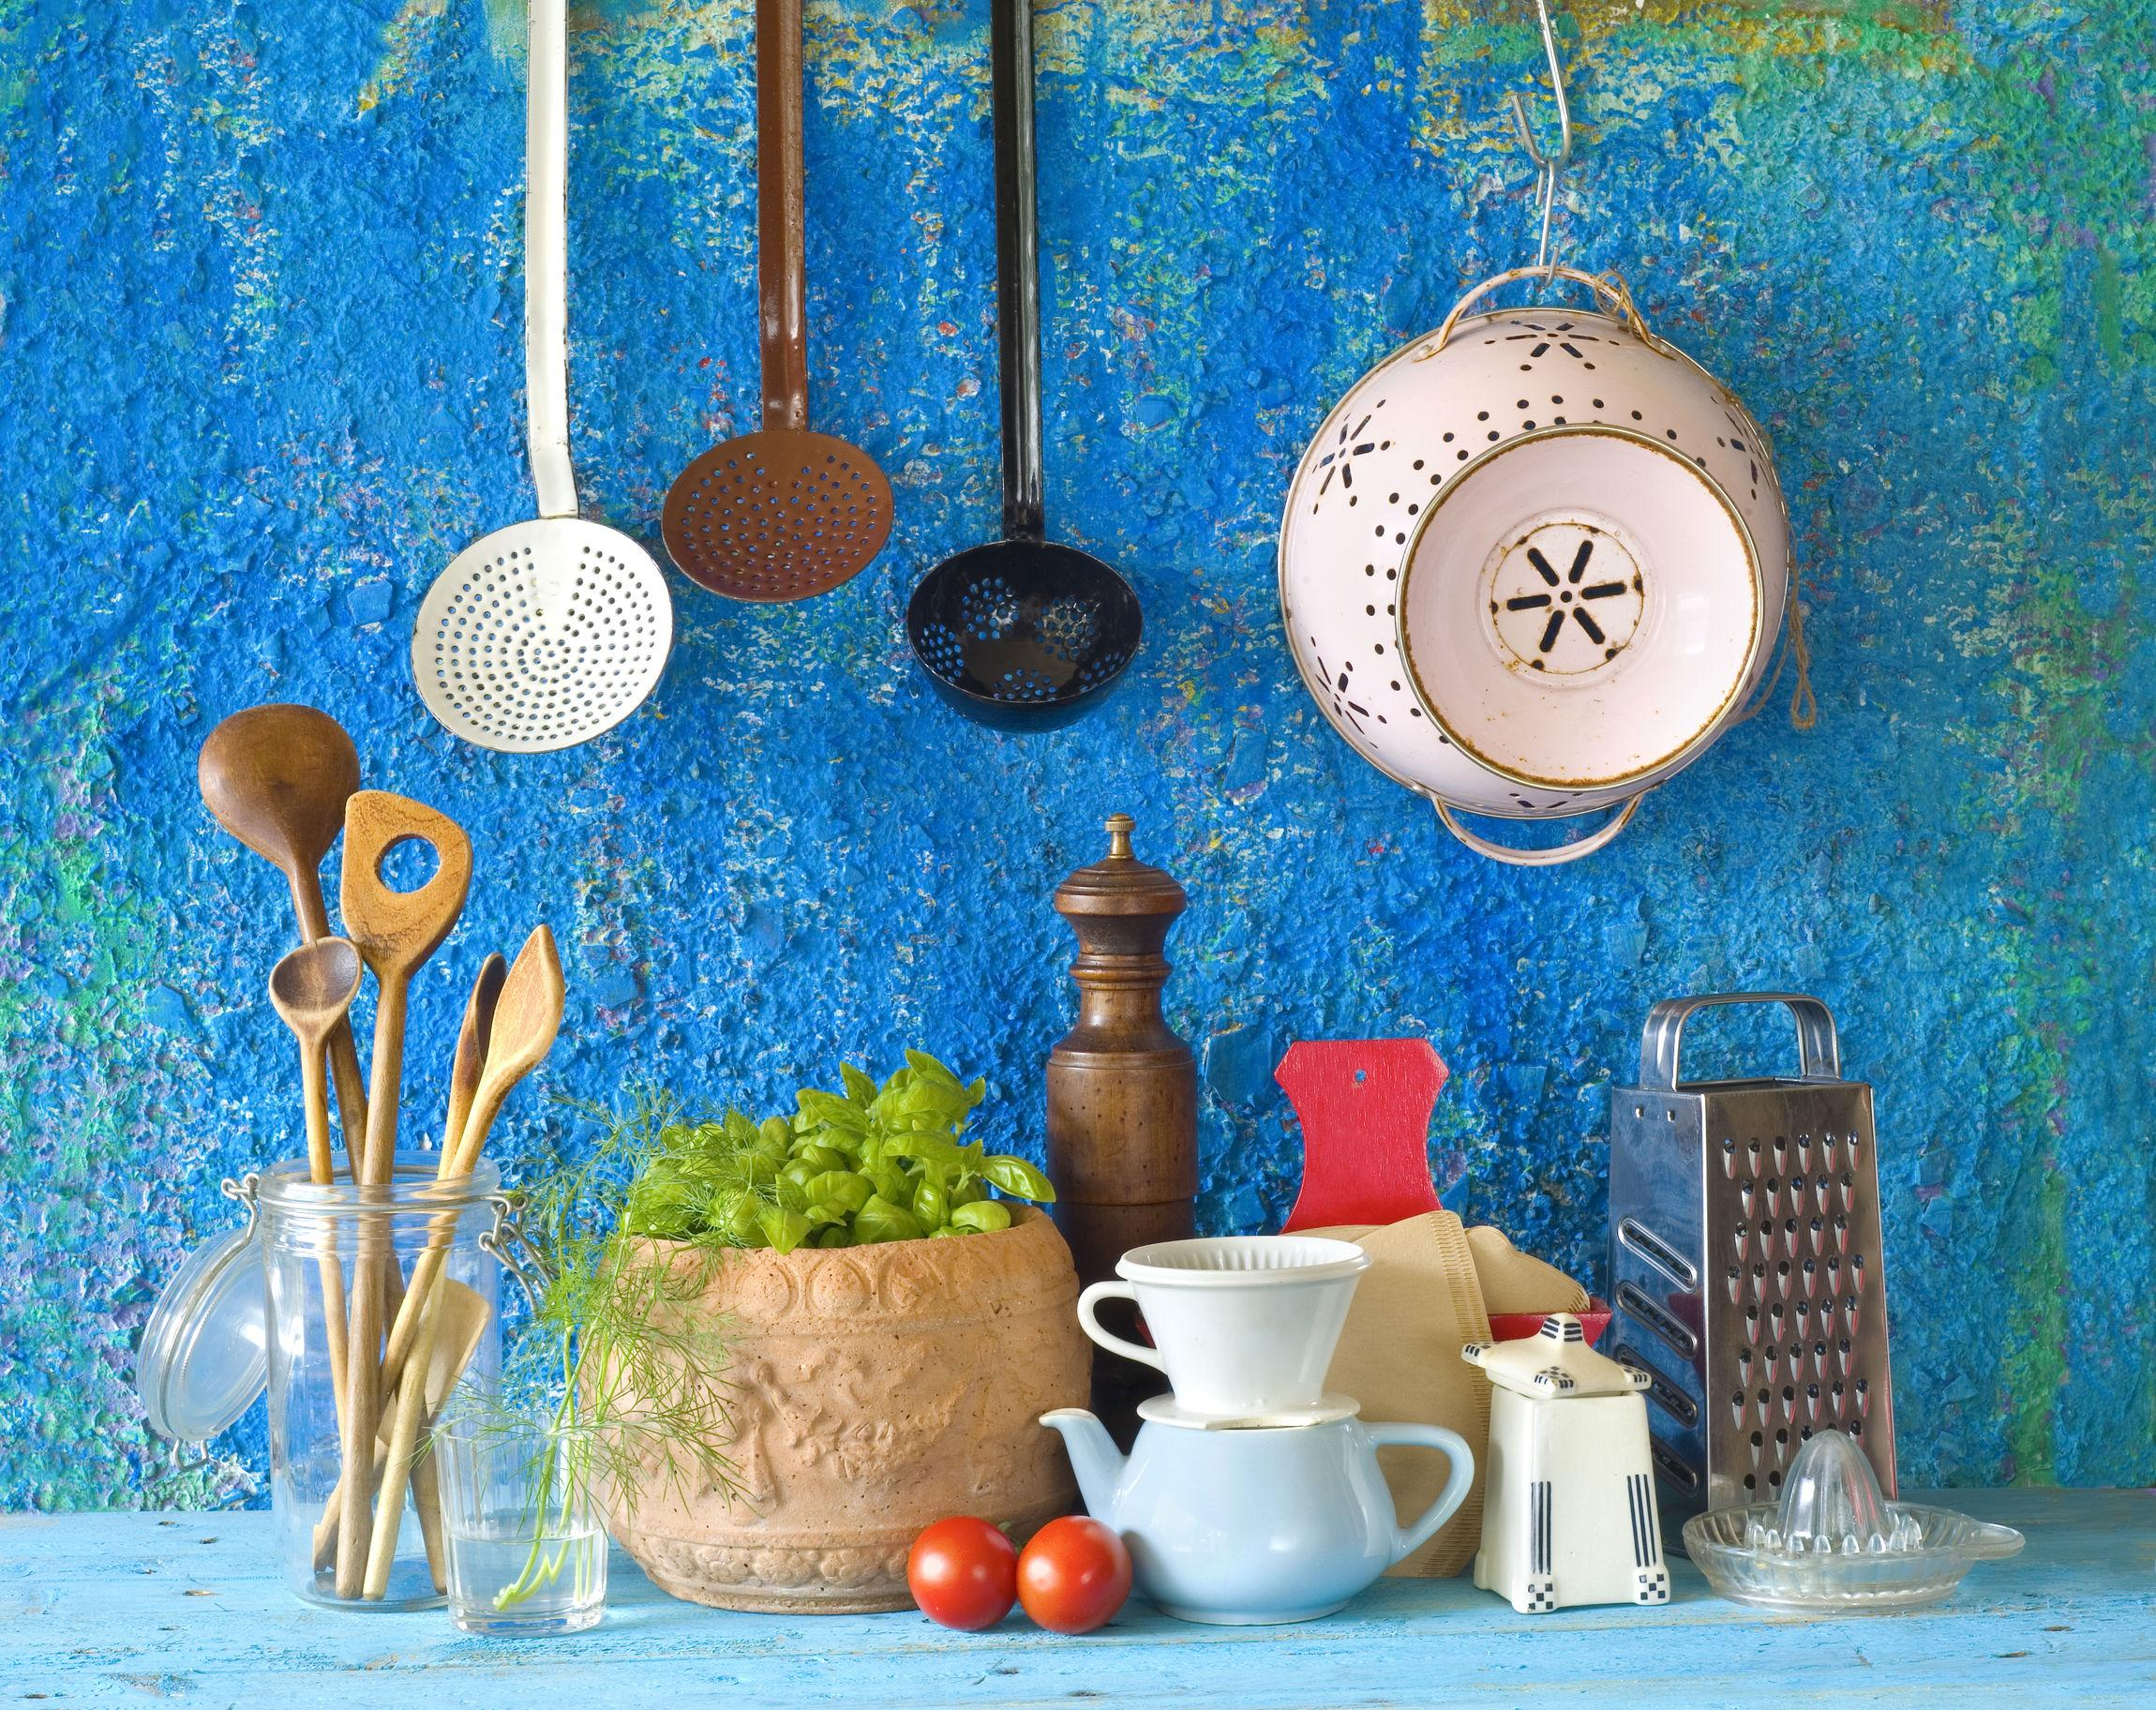 What is the Best Heat Resistant Cooking Utensil Material?